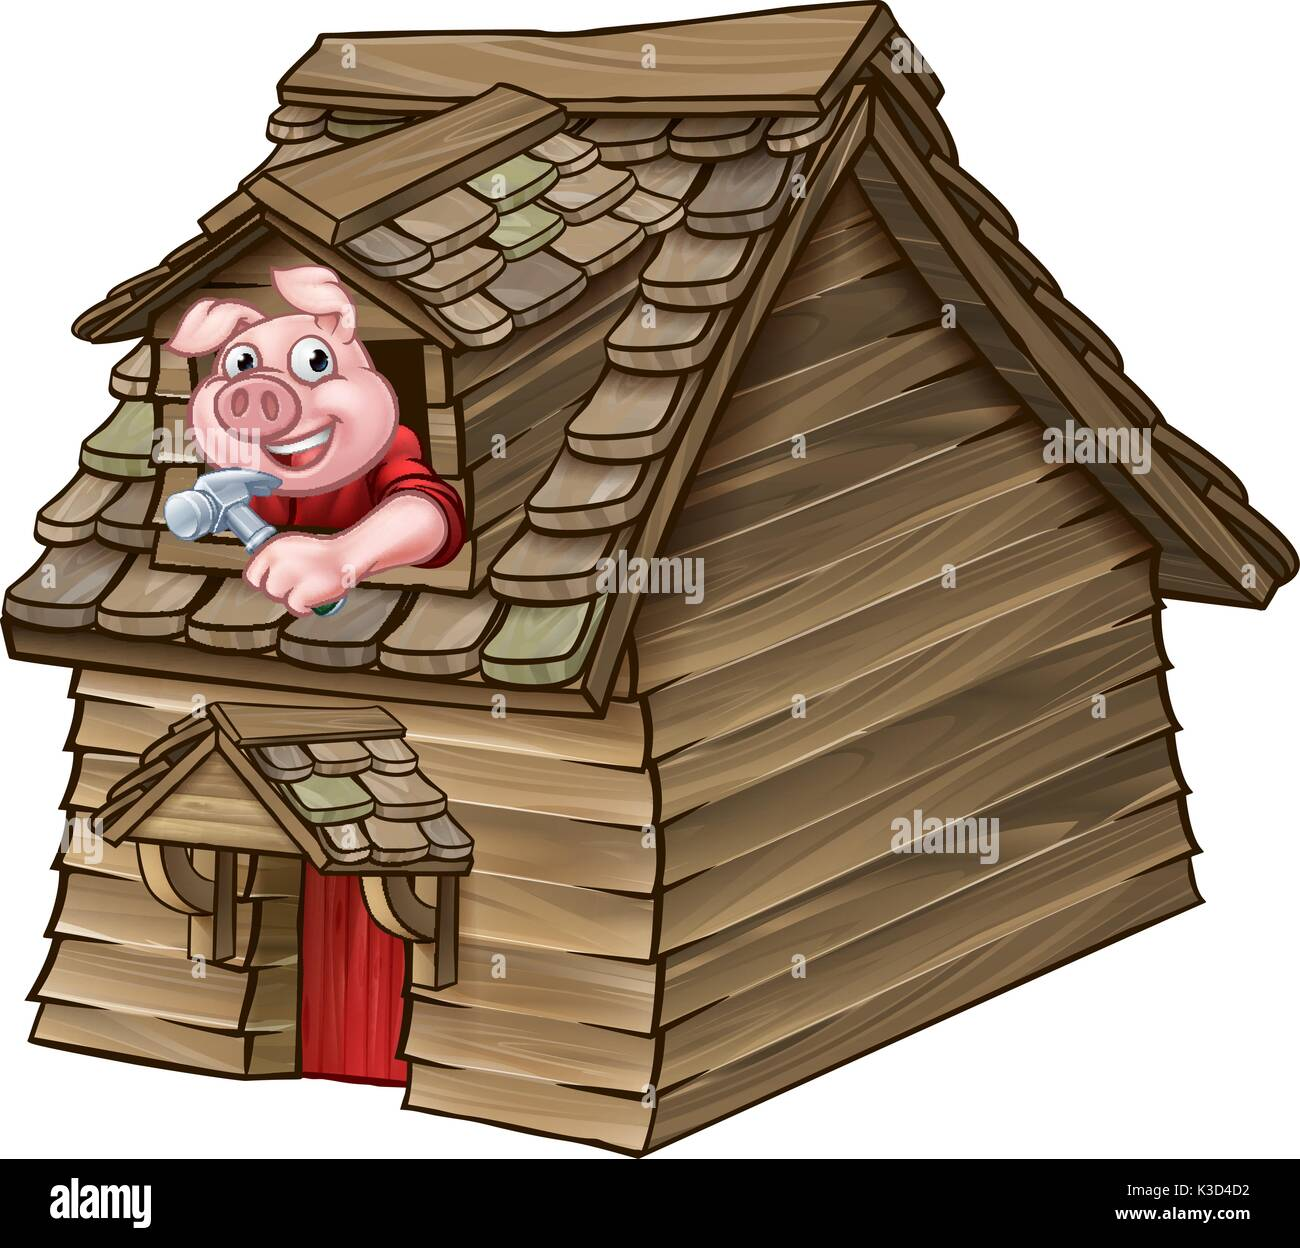 Three Little Pigs Fairy Tale Wood House Stock Vector Art ...